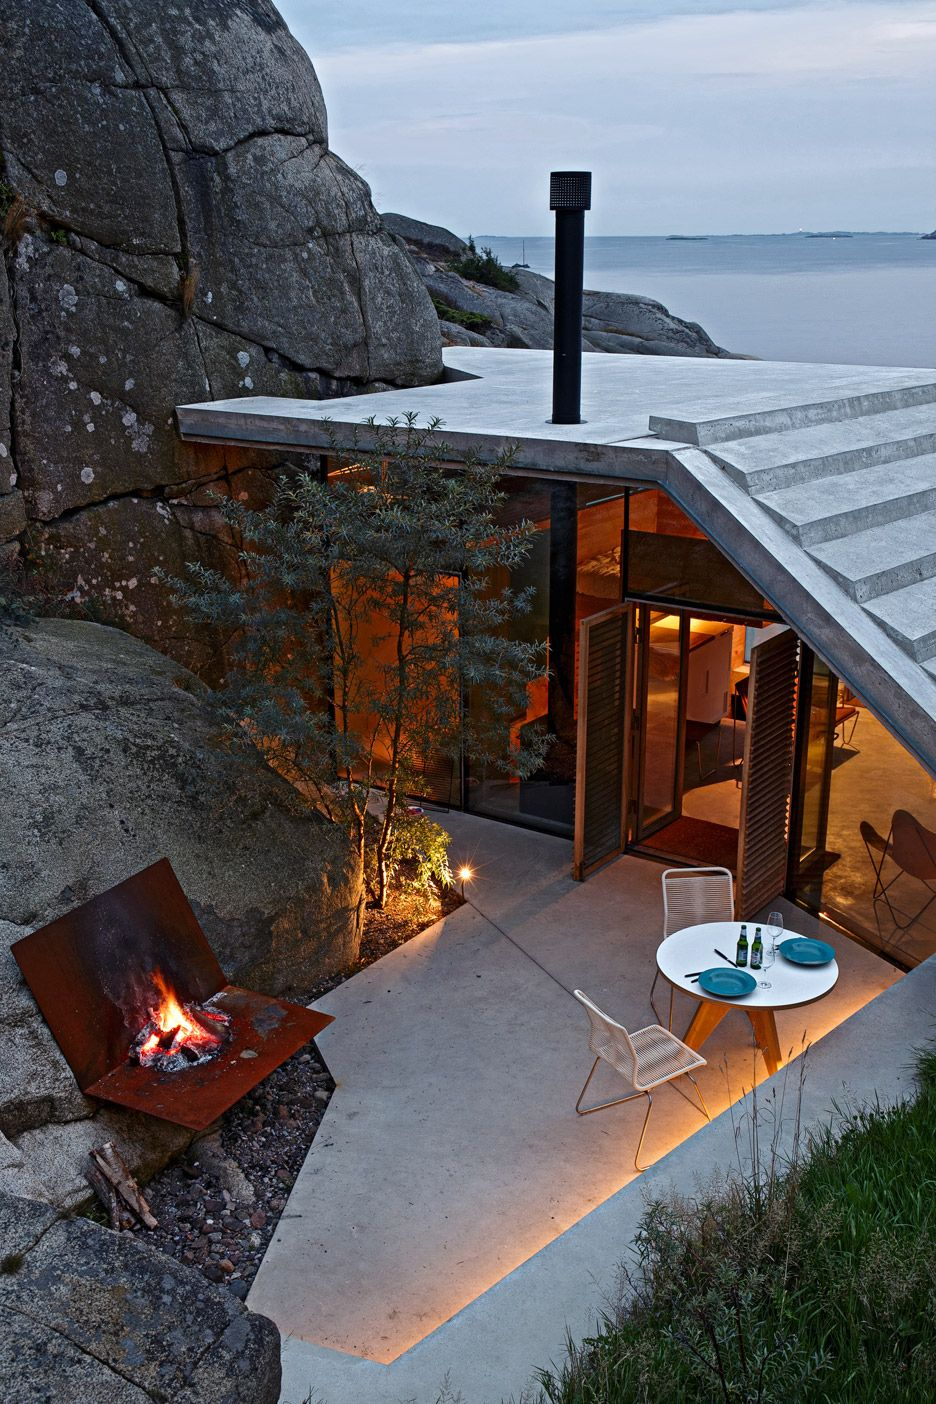 Sweden Houses Design Seaside Cabin On The Rocks In Norway Knapphullet By Lund Hagem